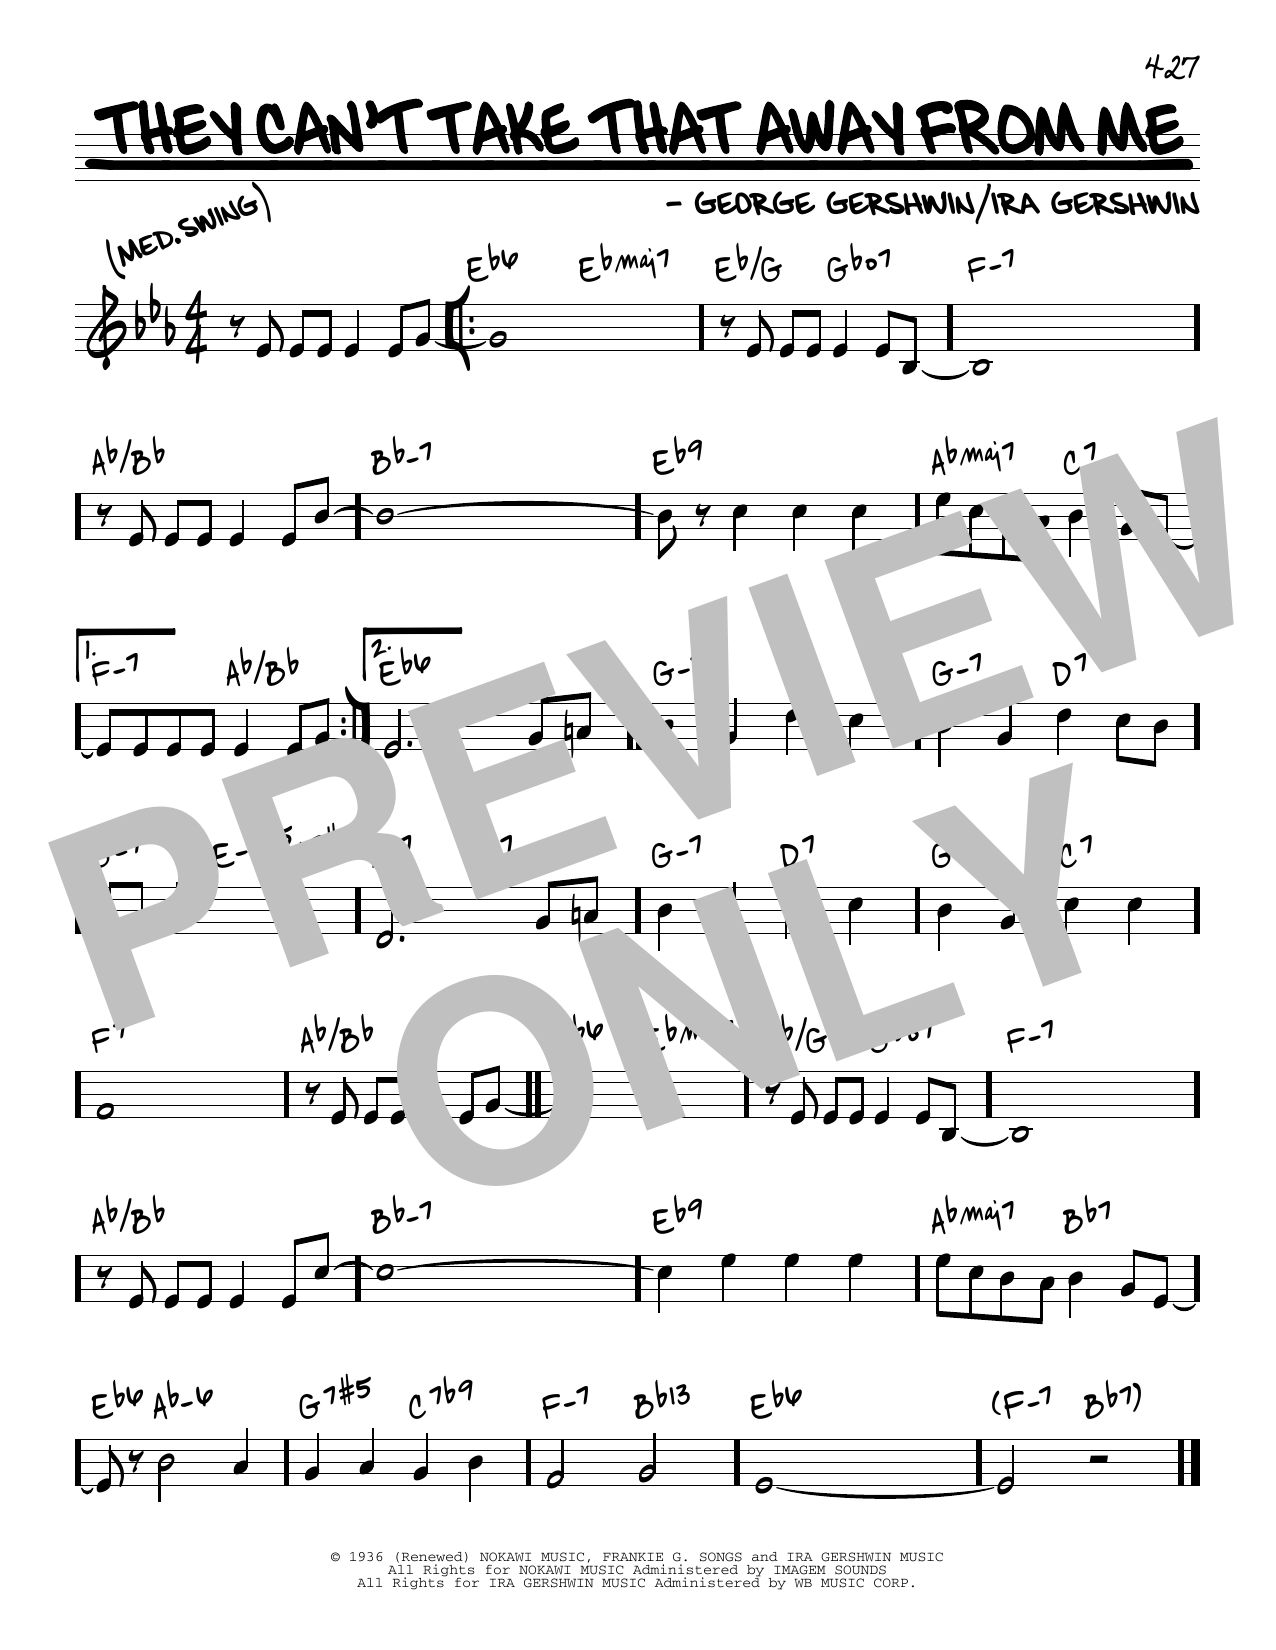 George Gershwin & Ira Gershwin They Can't Take That Away From Me sheet music notes and chords. Download Printable PDF.